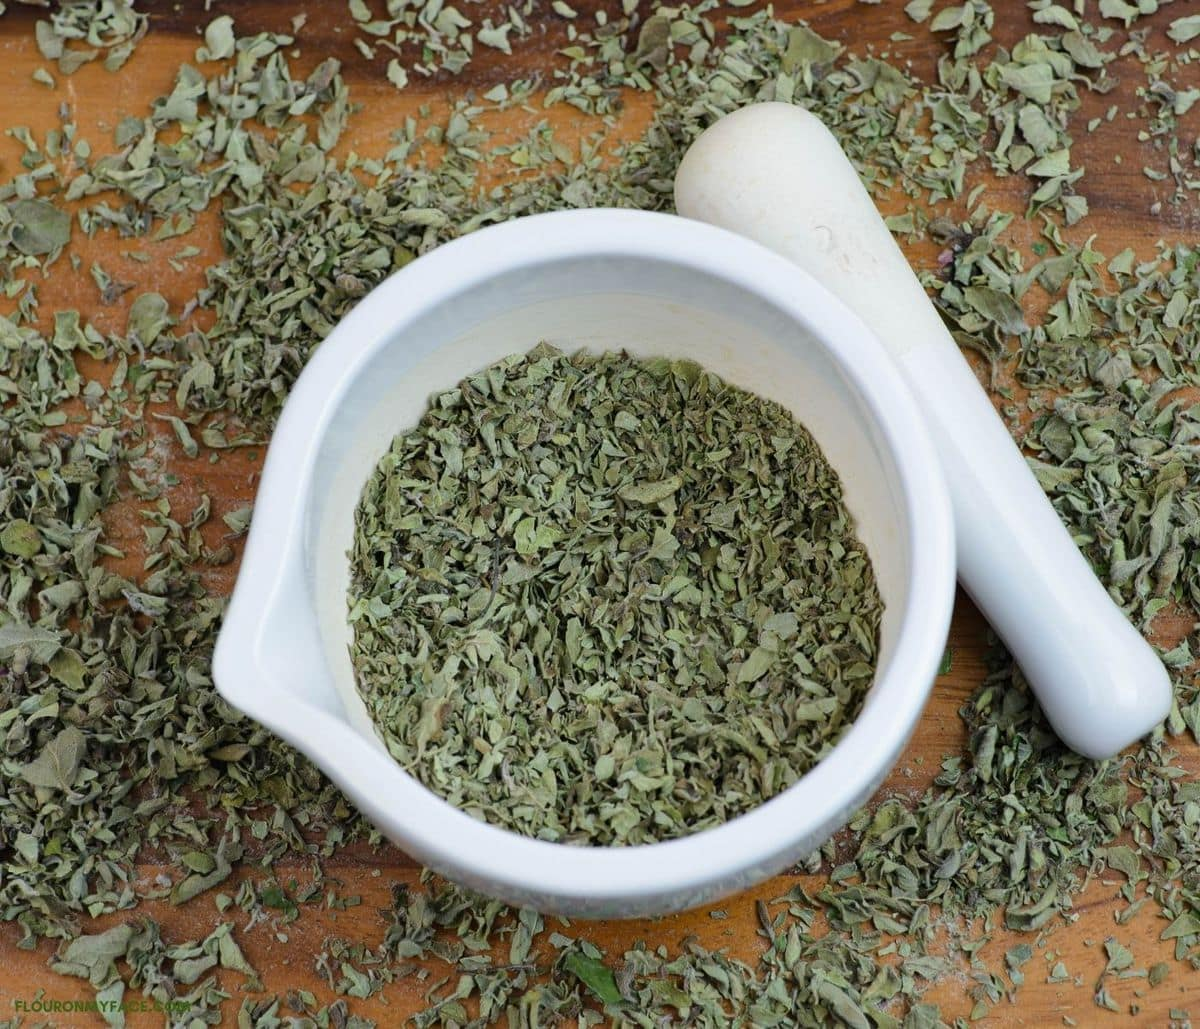 A tray with crushed dried oregano in a white mortar with a pestle.